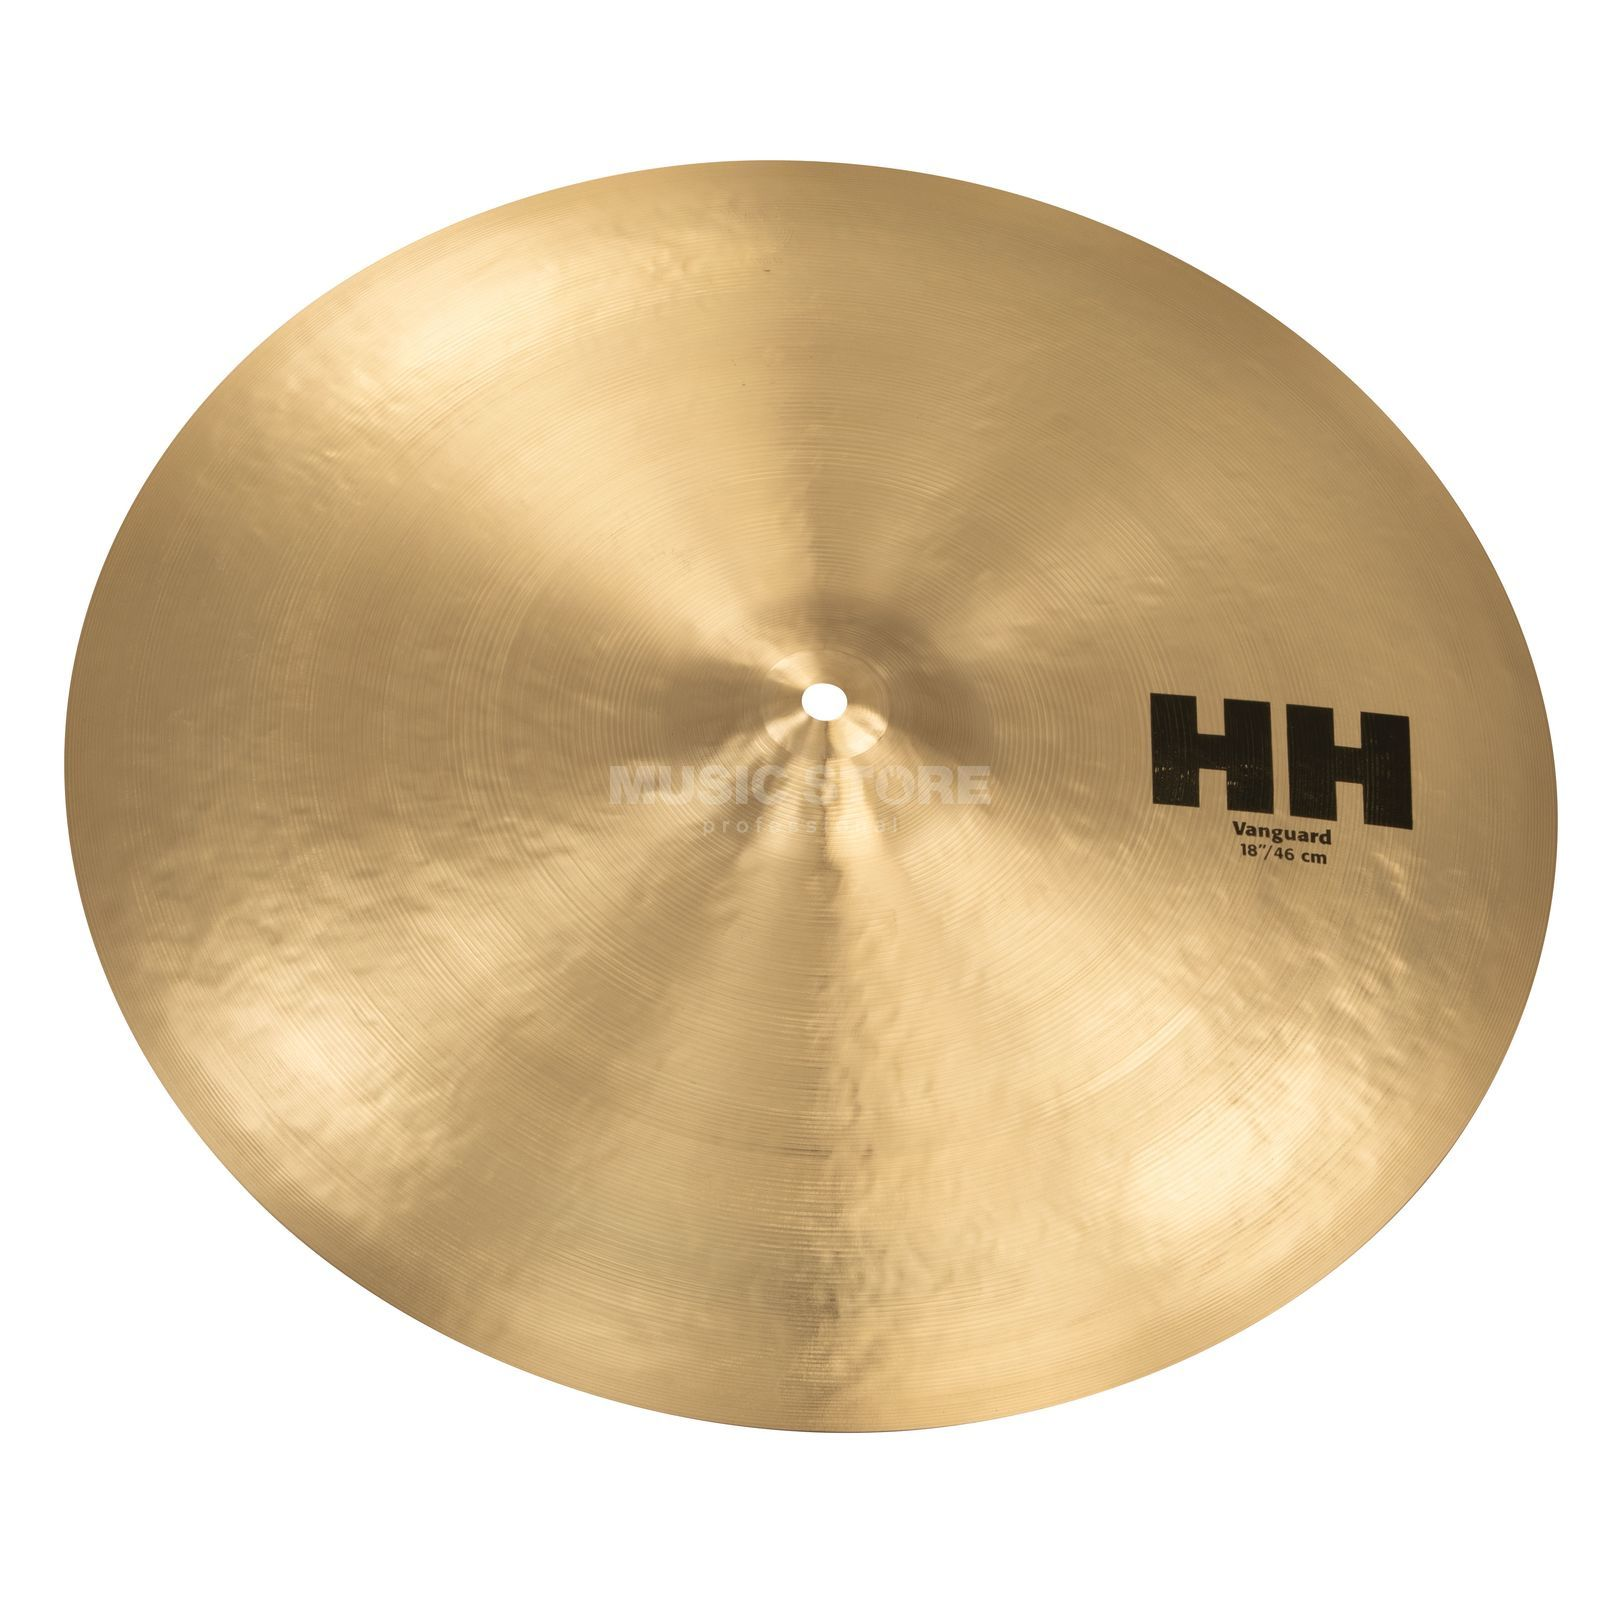 "Sabian HH Vanguard Crash 18"", Remastered Product Image"